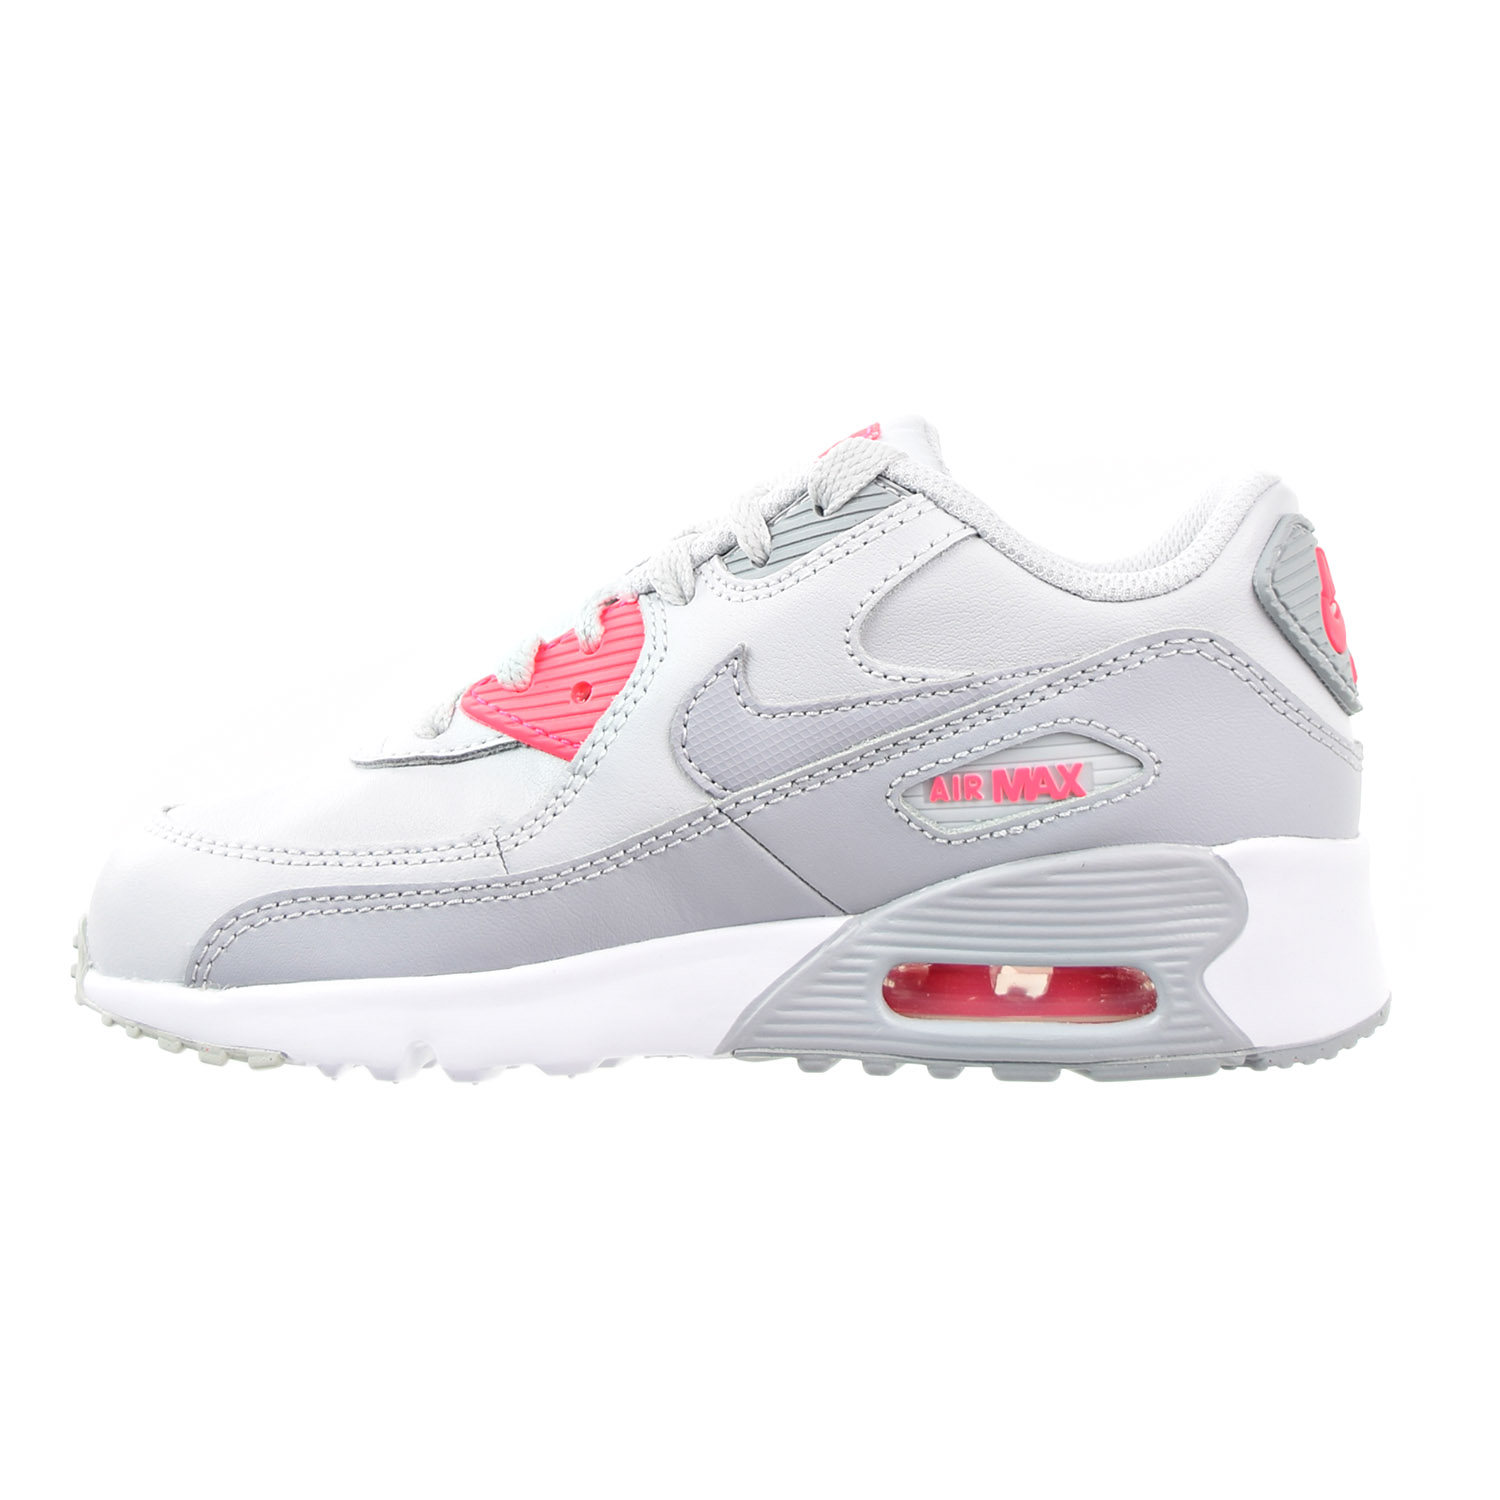 Nike Air Max 90 LTR Little Kid/'s Shoes Pure Platinum-Wolf Grey 833377-007 PS